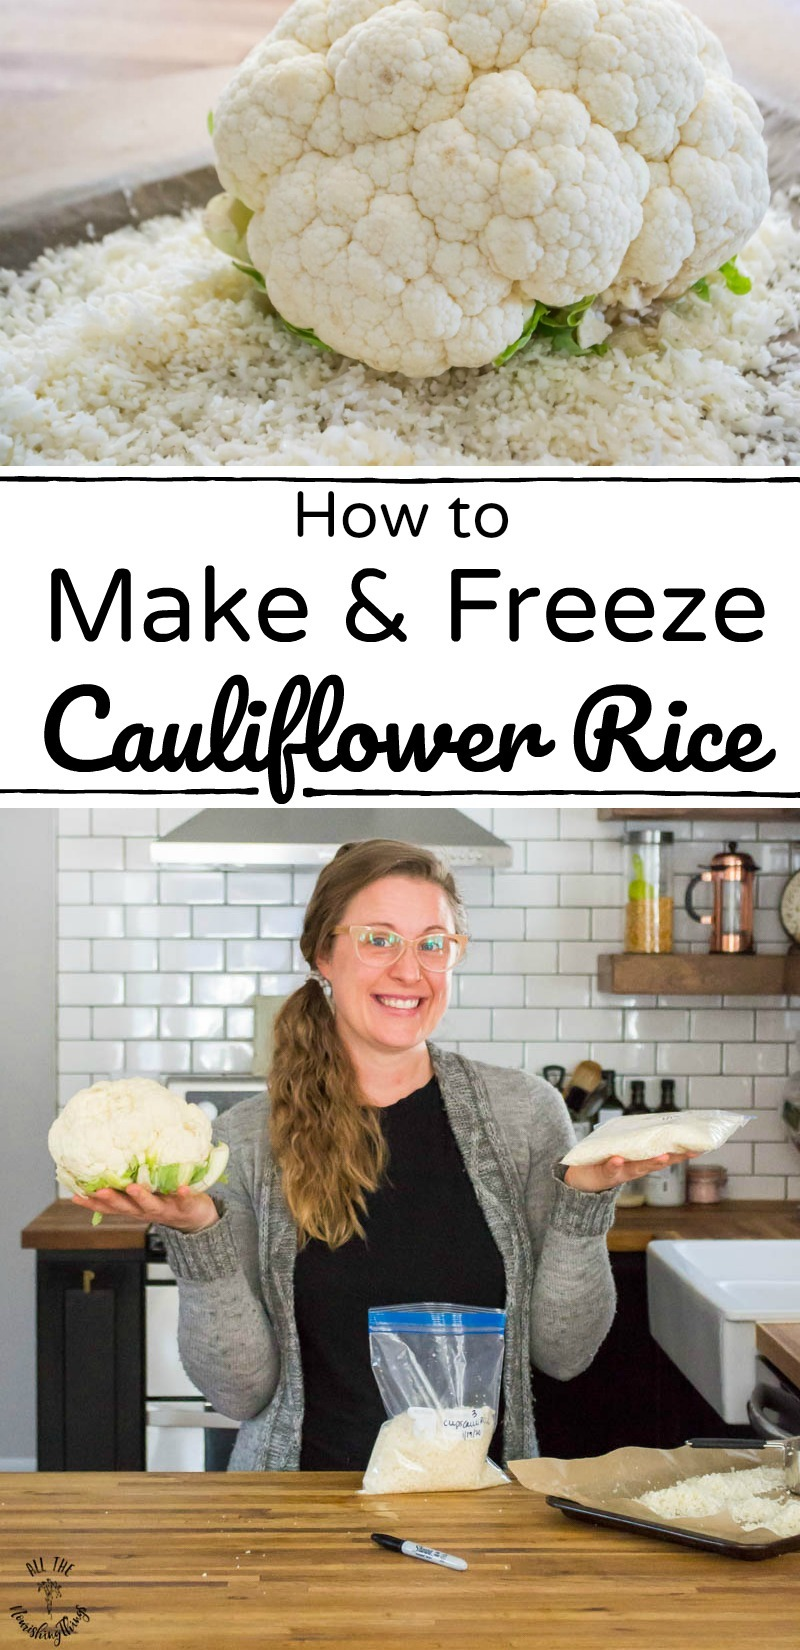 collage of images about making and freezing cauliflower rice with text overlay